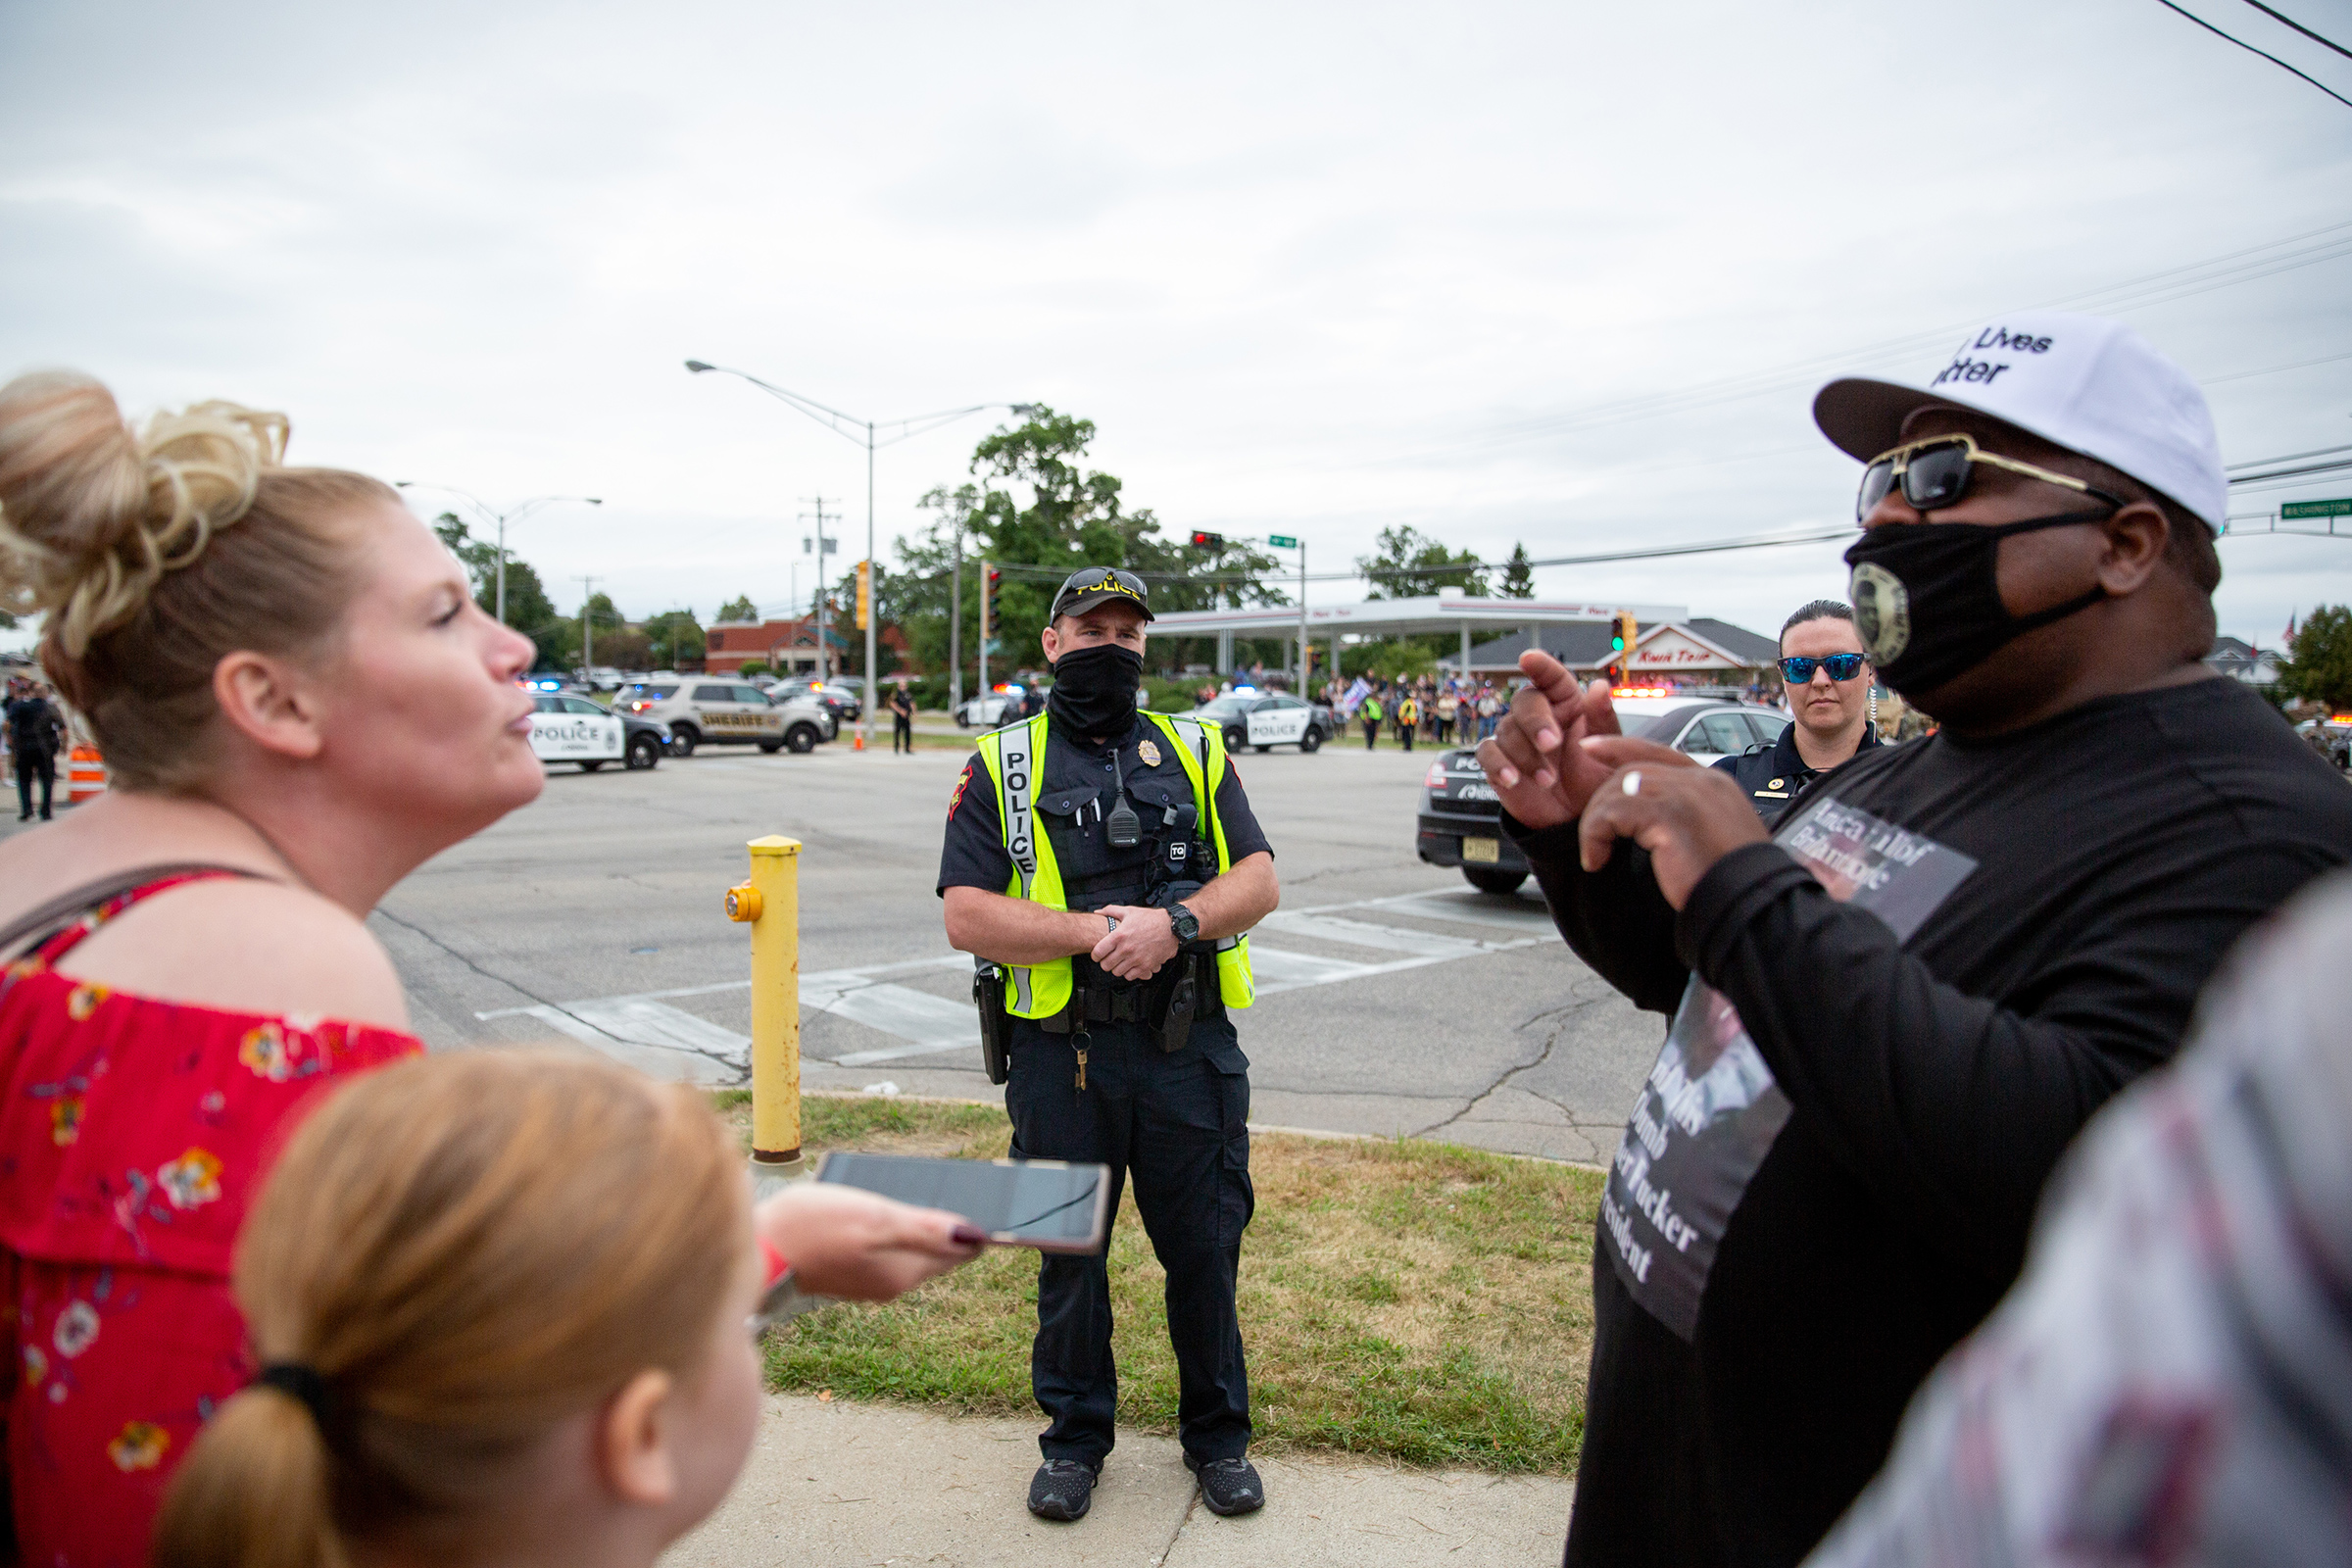 A confrontation during the President's visit to Kenosha, Wis., on Sept. 1